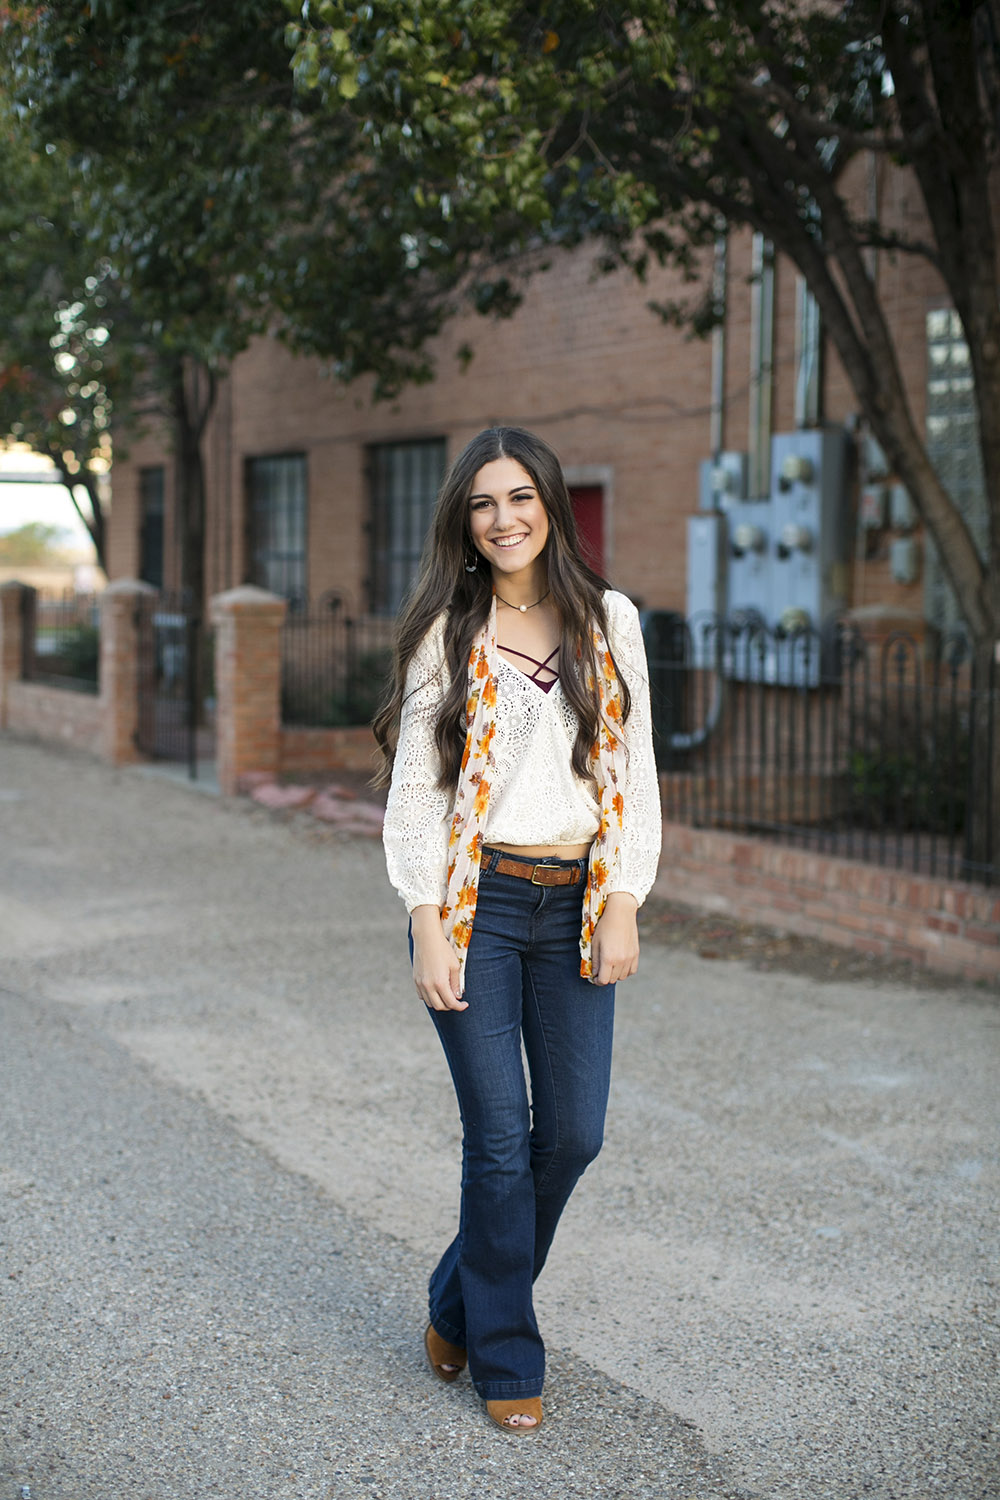 linda-mcmillan-photography-texas-tech-senior-photos-lubbock_10.JPG